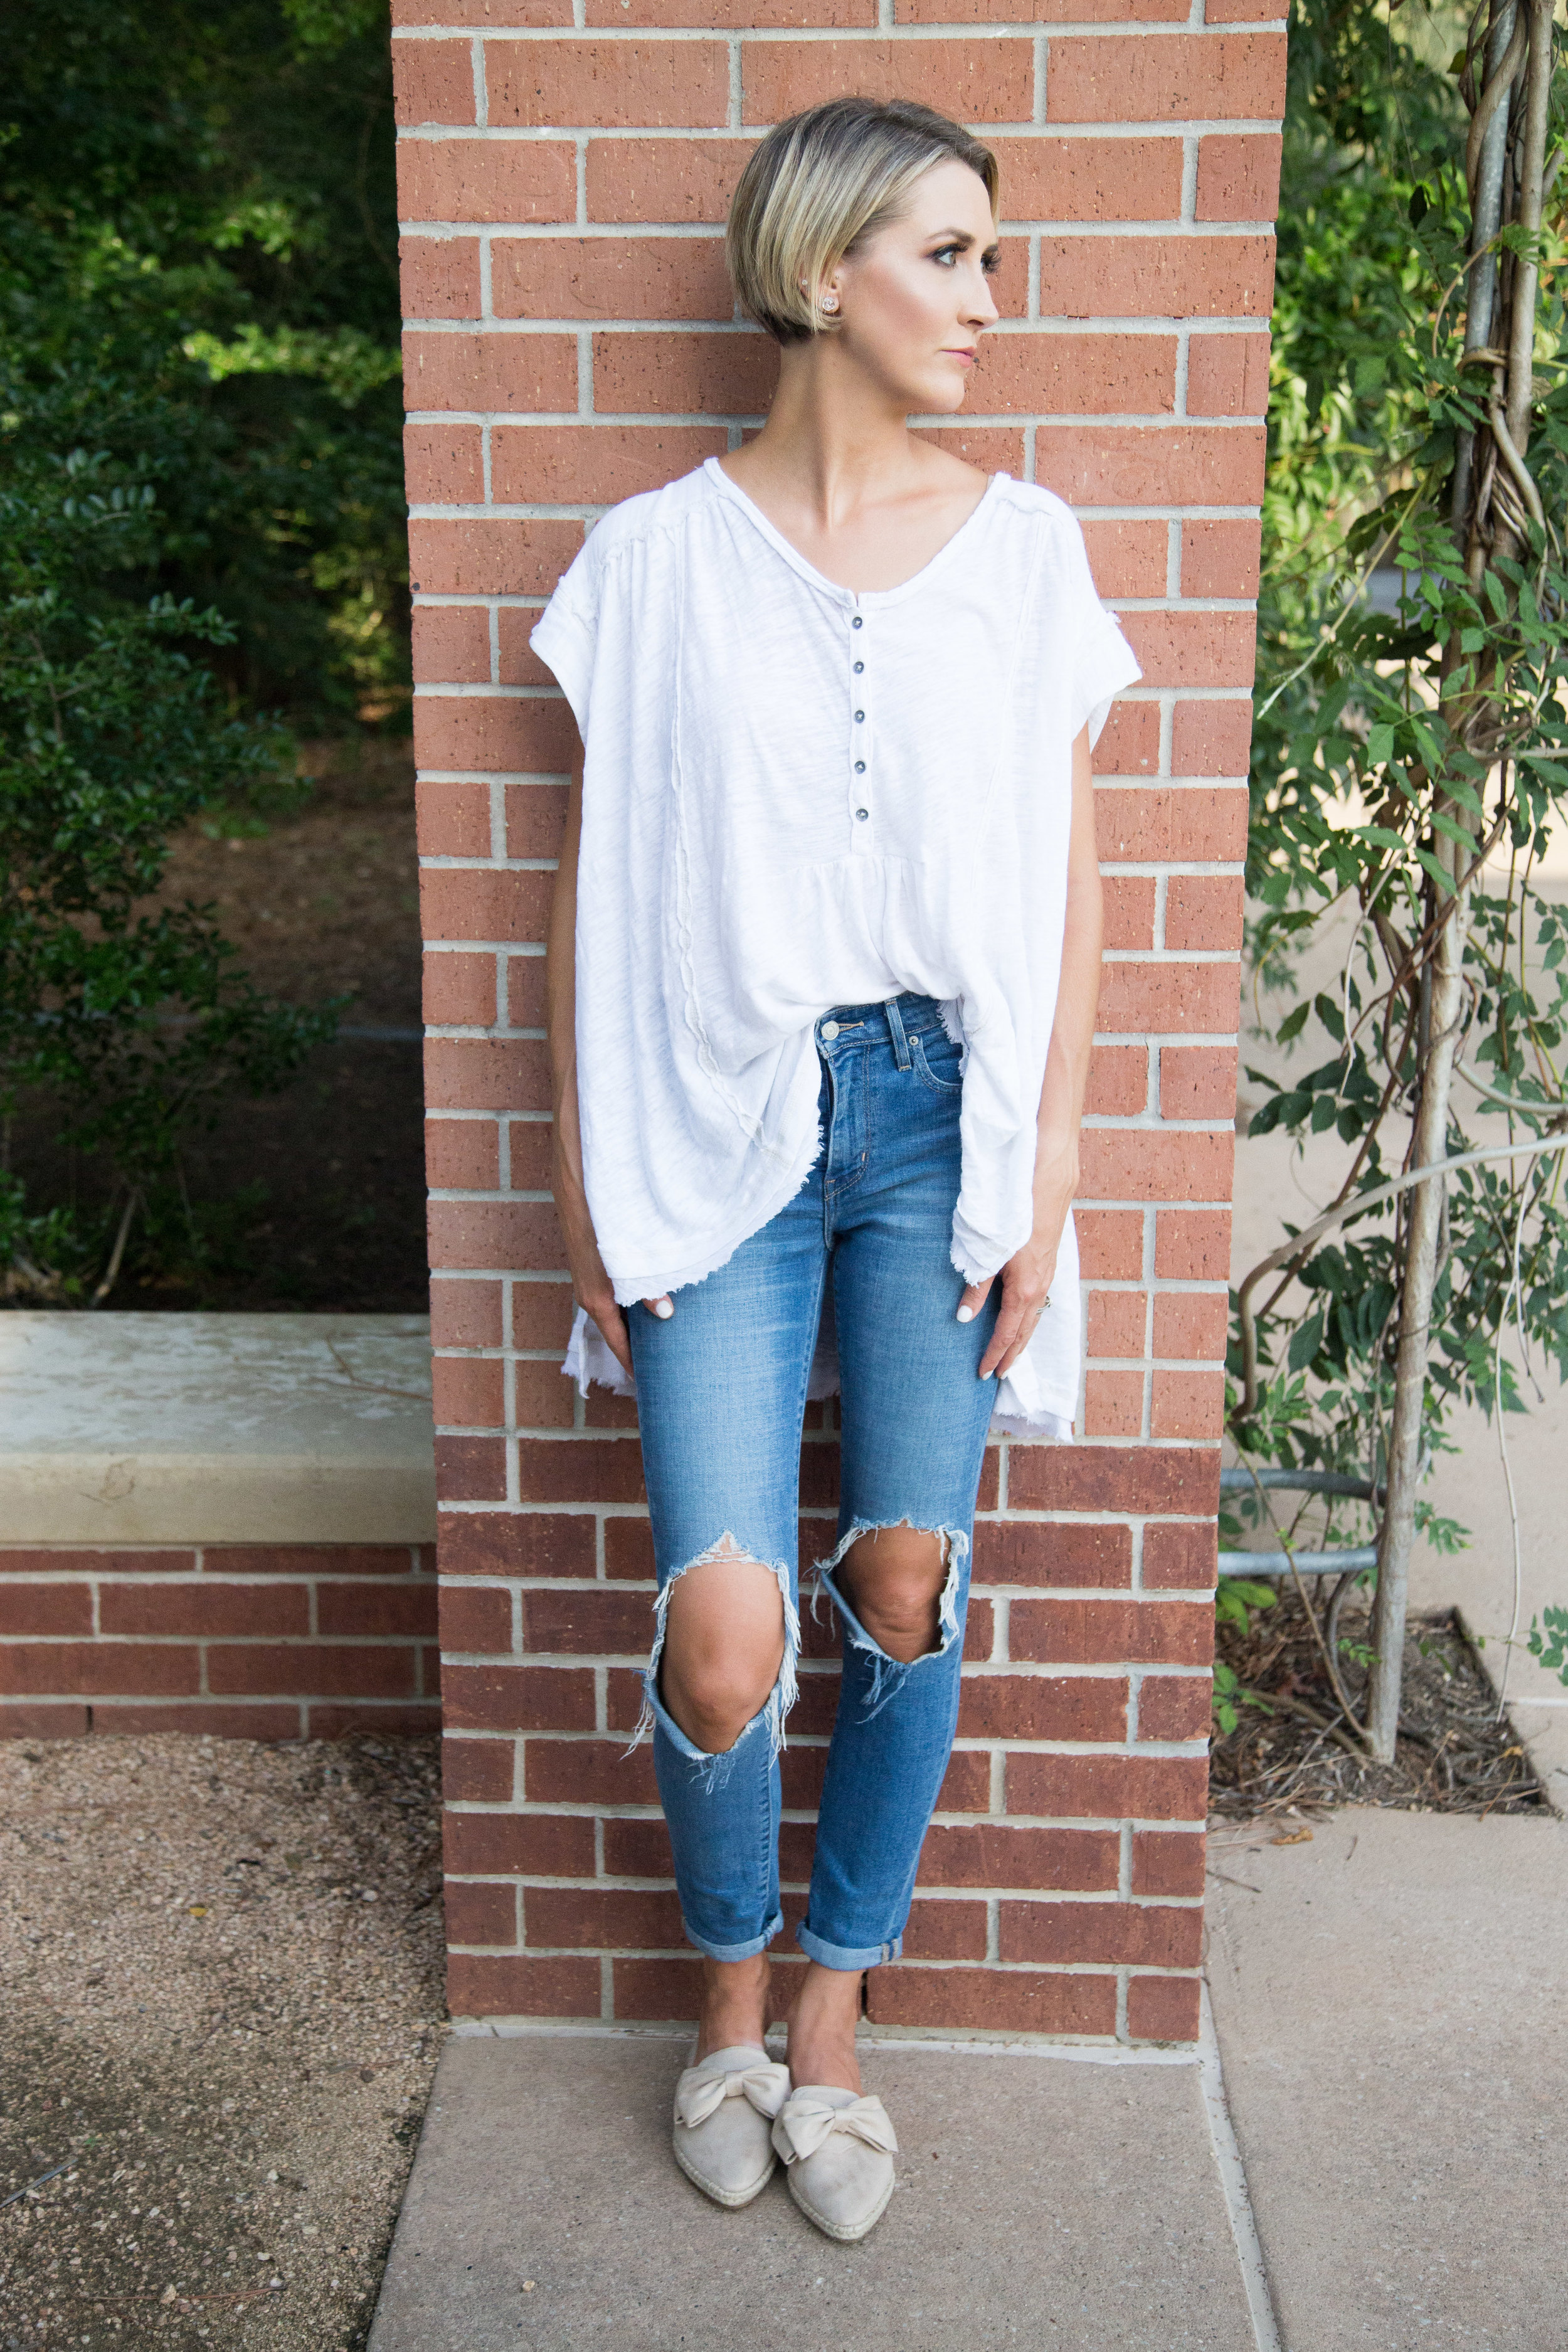 Here I show you that you have the option to tuck it in.  I styled the top with medium wash denim and a pair of neutral color slides. It's the perfect casual, cute, throw on and go look.